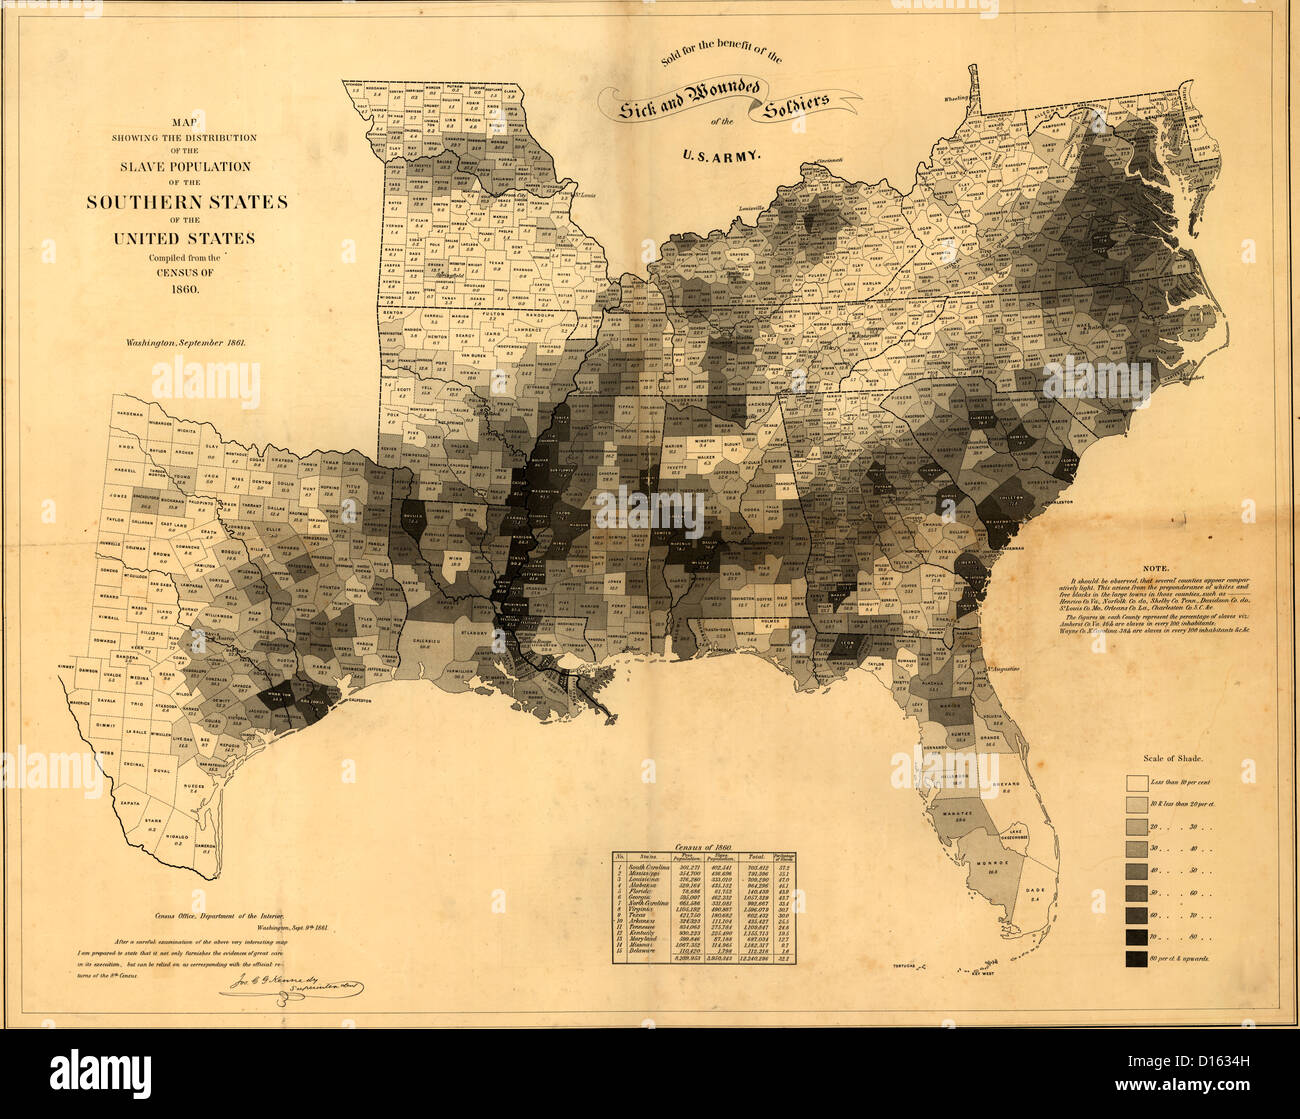 Distribution of Slavery in the Southern States, as per 1860 USA Census - Stock Image